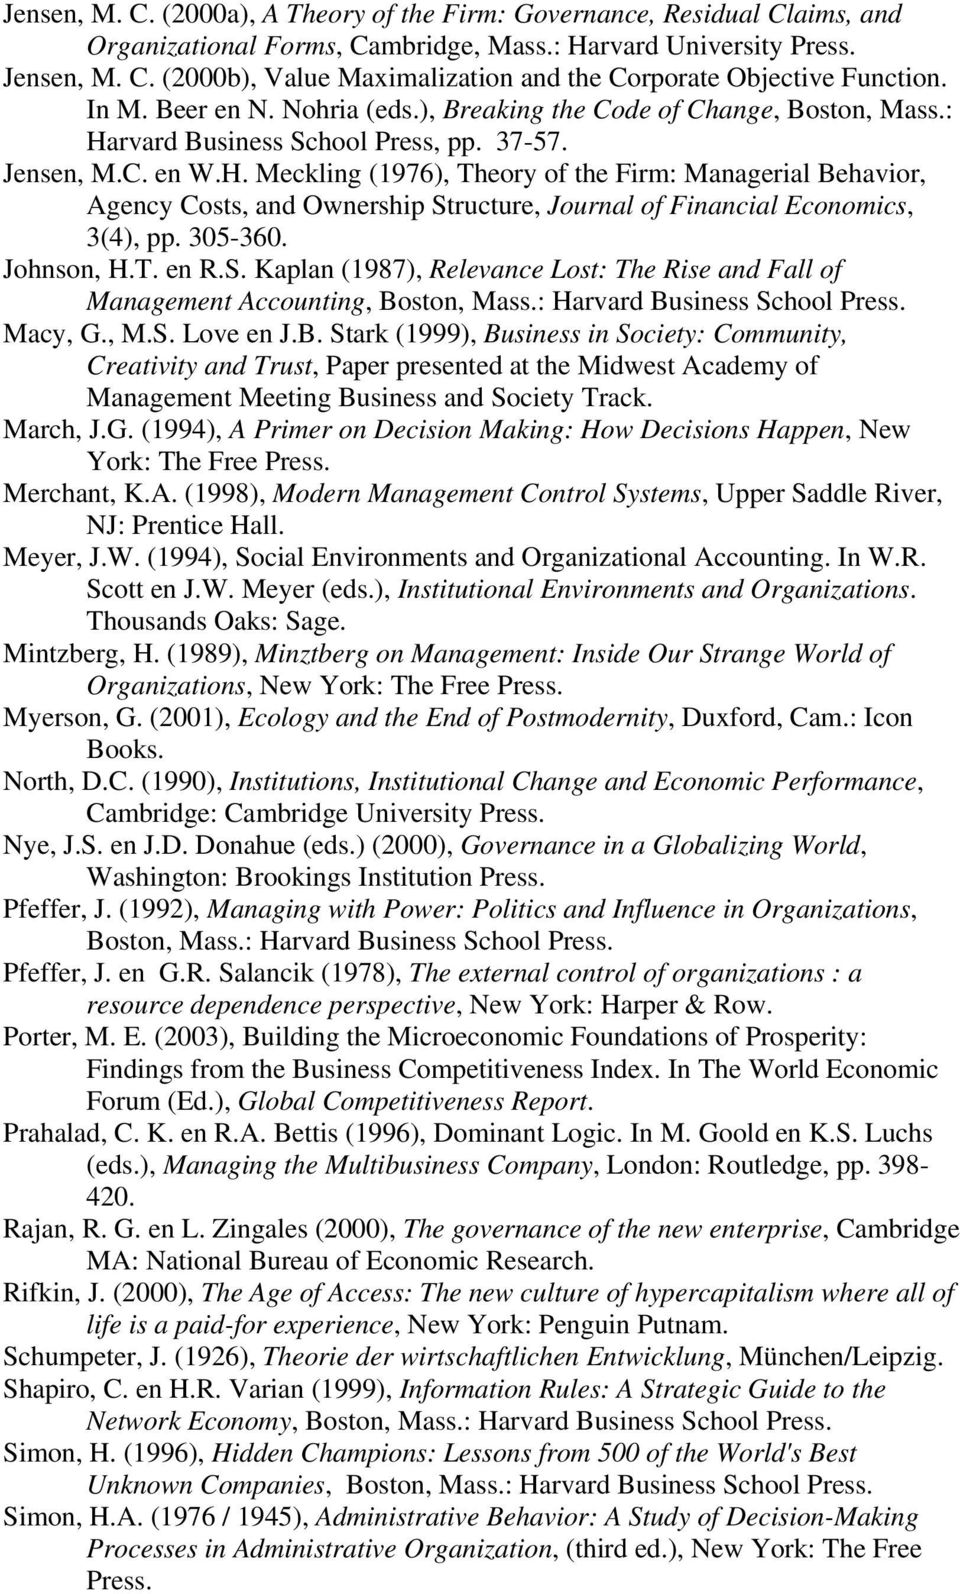 rvard Business School Press, pp. 37-57. Jensen, M.C. en W.H. Meckling (1976), Theory of the Firm: Managerial Behavior, Agency Costs, and Ownership Structure, Journal of Financial Economics, 3(4), pp.